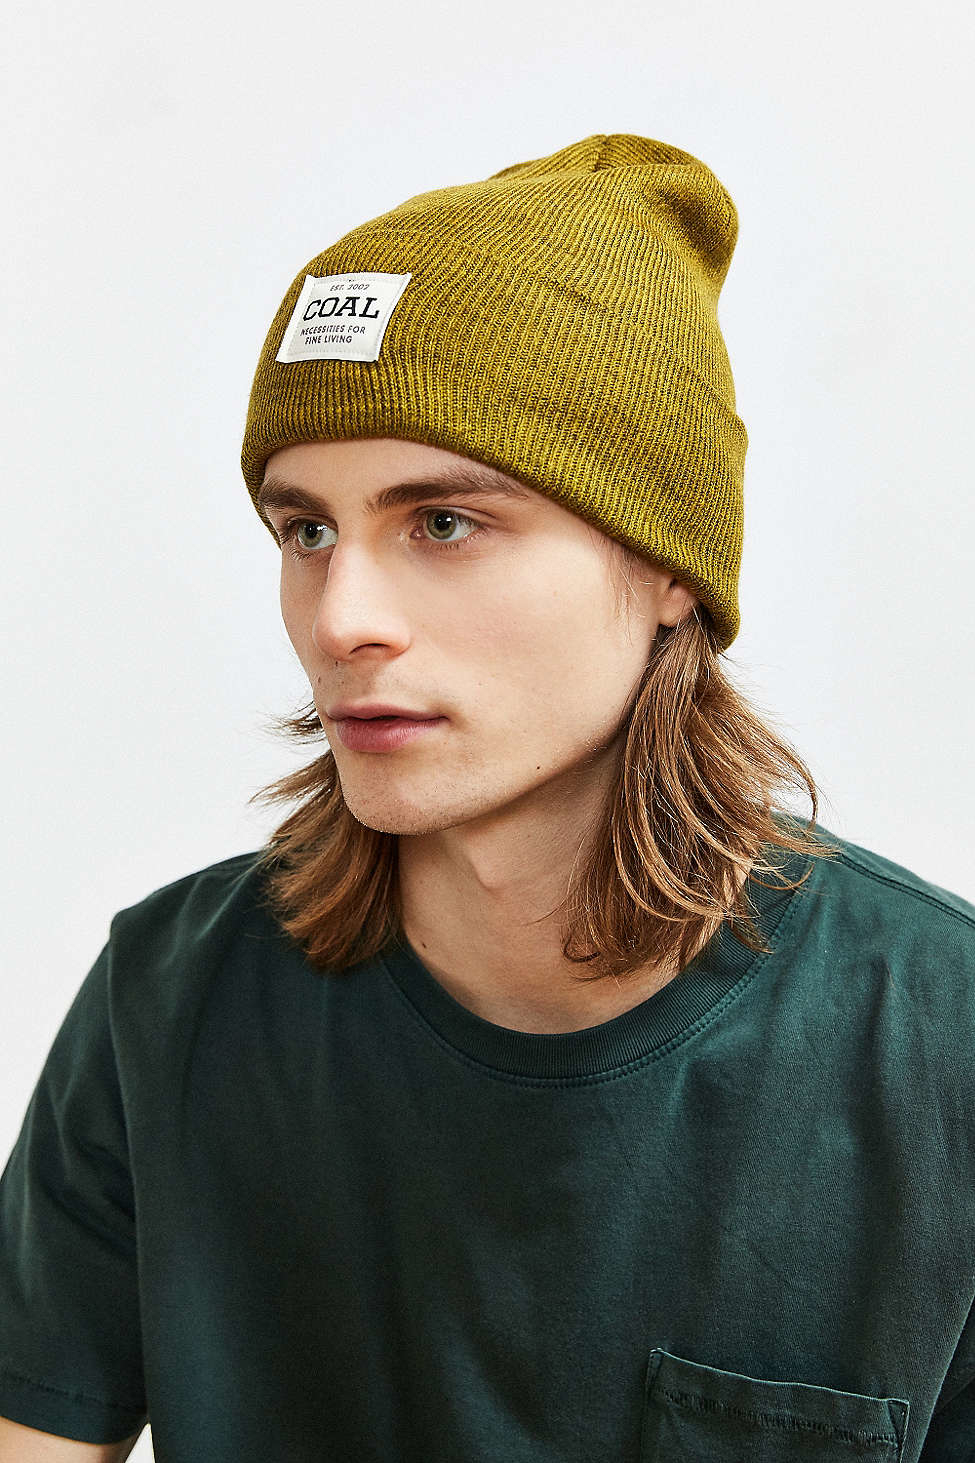 Lyst - Coal The Uniform Beanie in Yellow for Men e7938a0ee56d